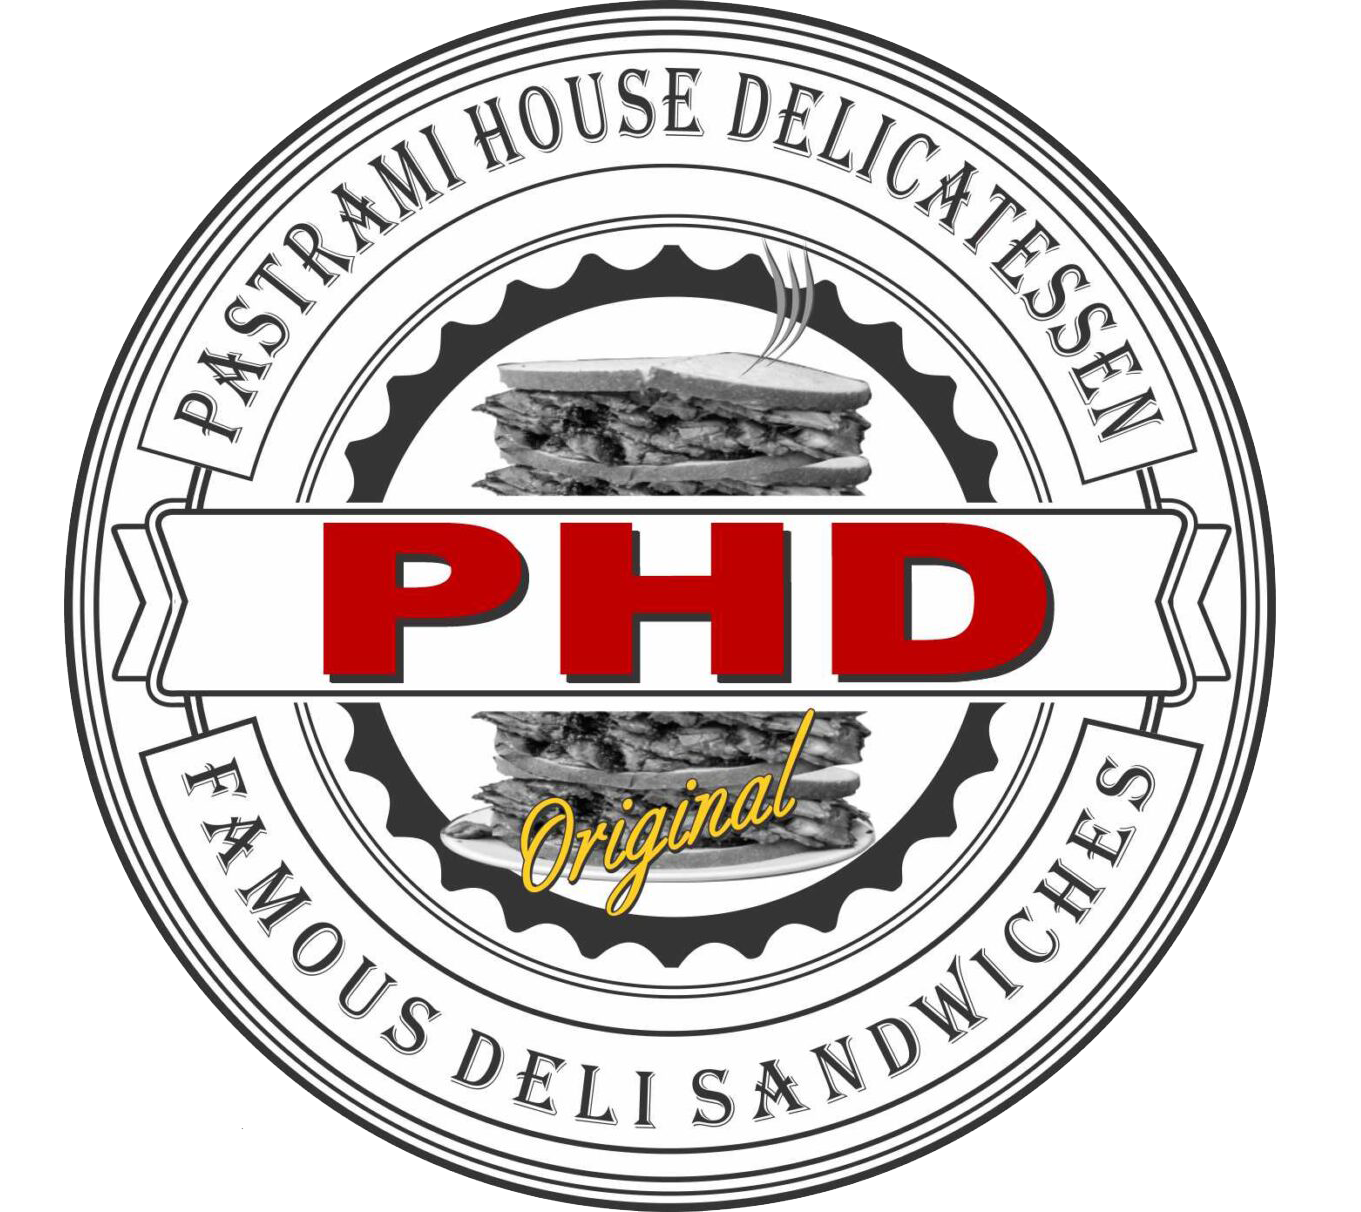 PASTRAMI HOUSE DELICATESSEN